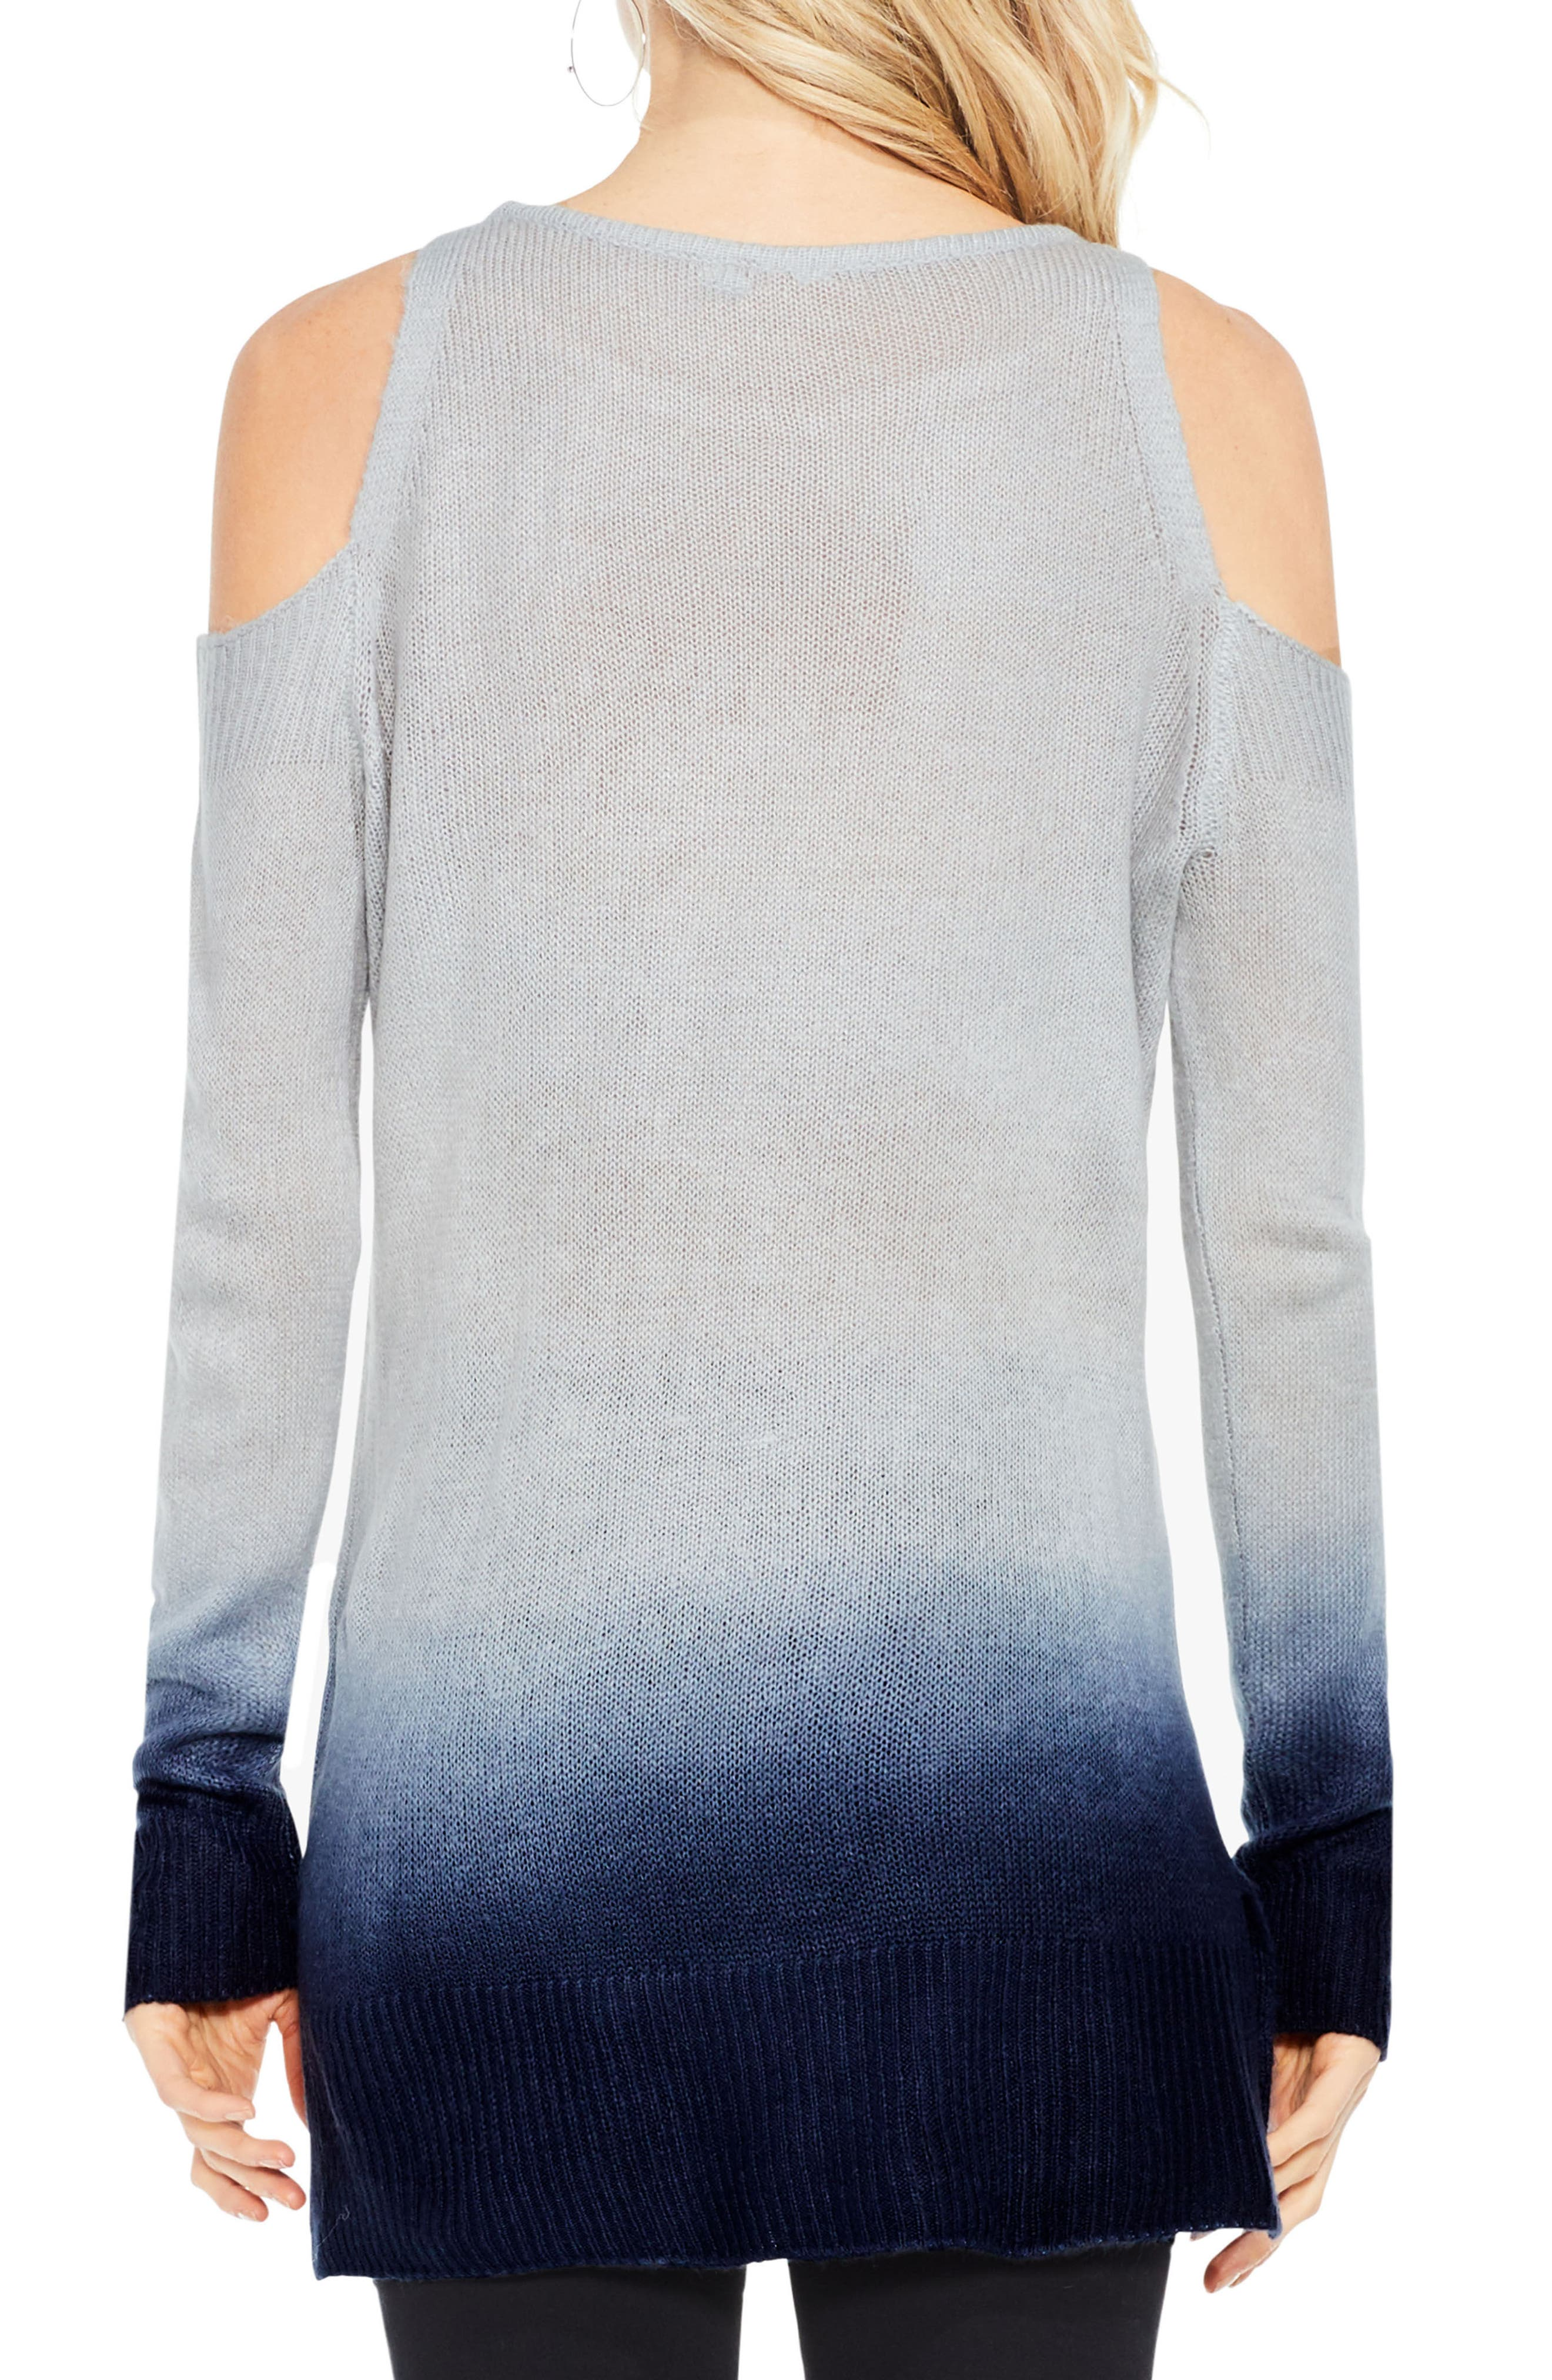 Alternate Image 3  - Two by Vince Camuto Cold Shoulder Ombré Sweater